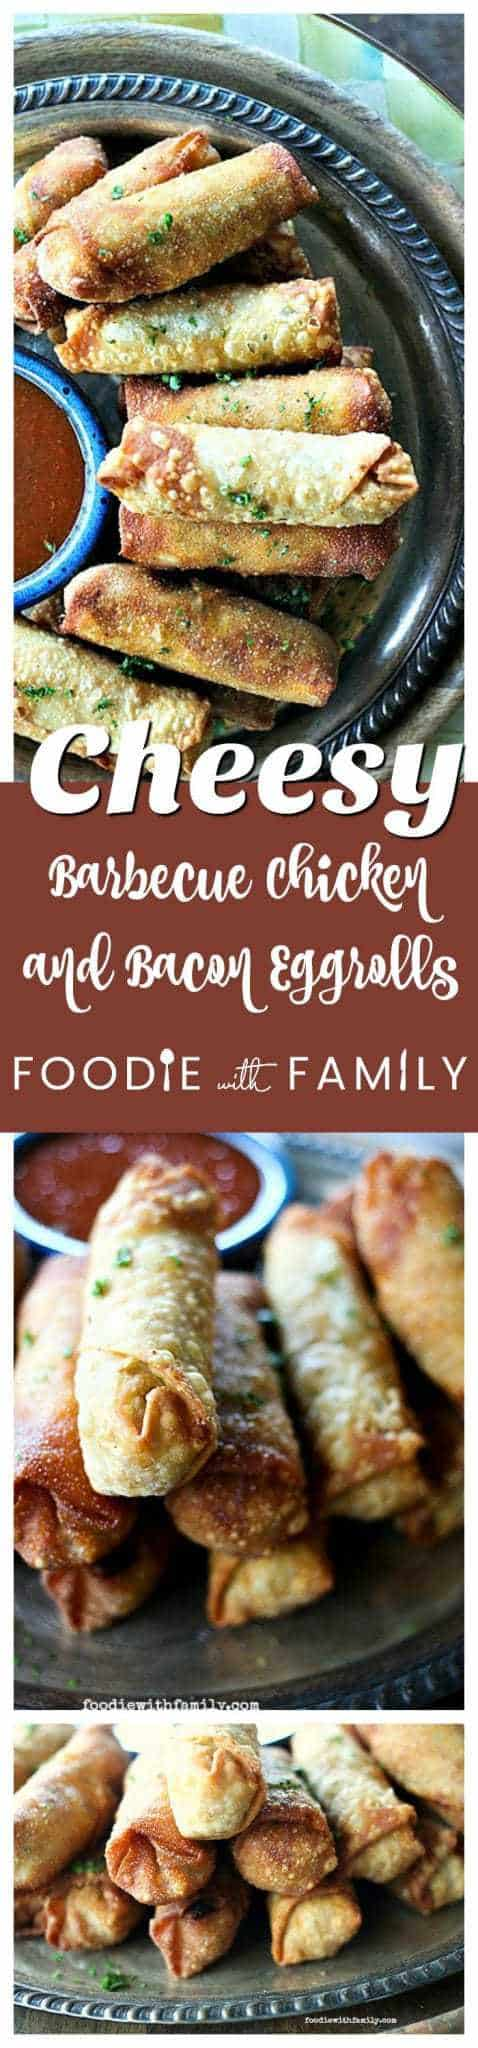 Crunchy egg roll wrappers around a cheesy, bacon studded, barbecue chicken filling will keep you wanting more Cheesy Barbecue Chicken and Bacon Egg Rolls!